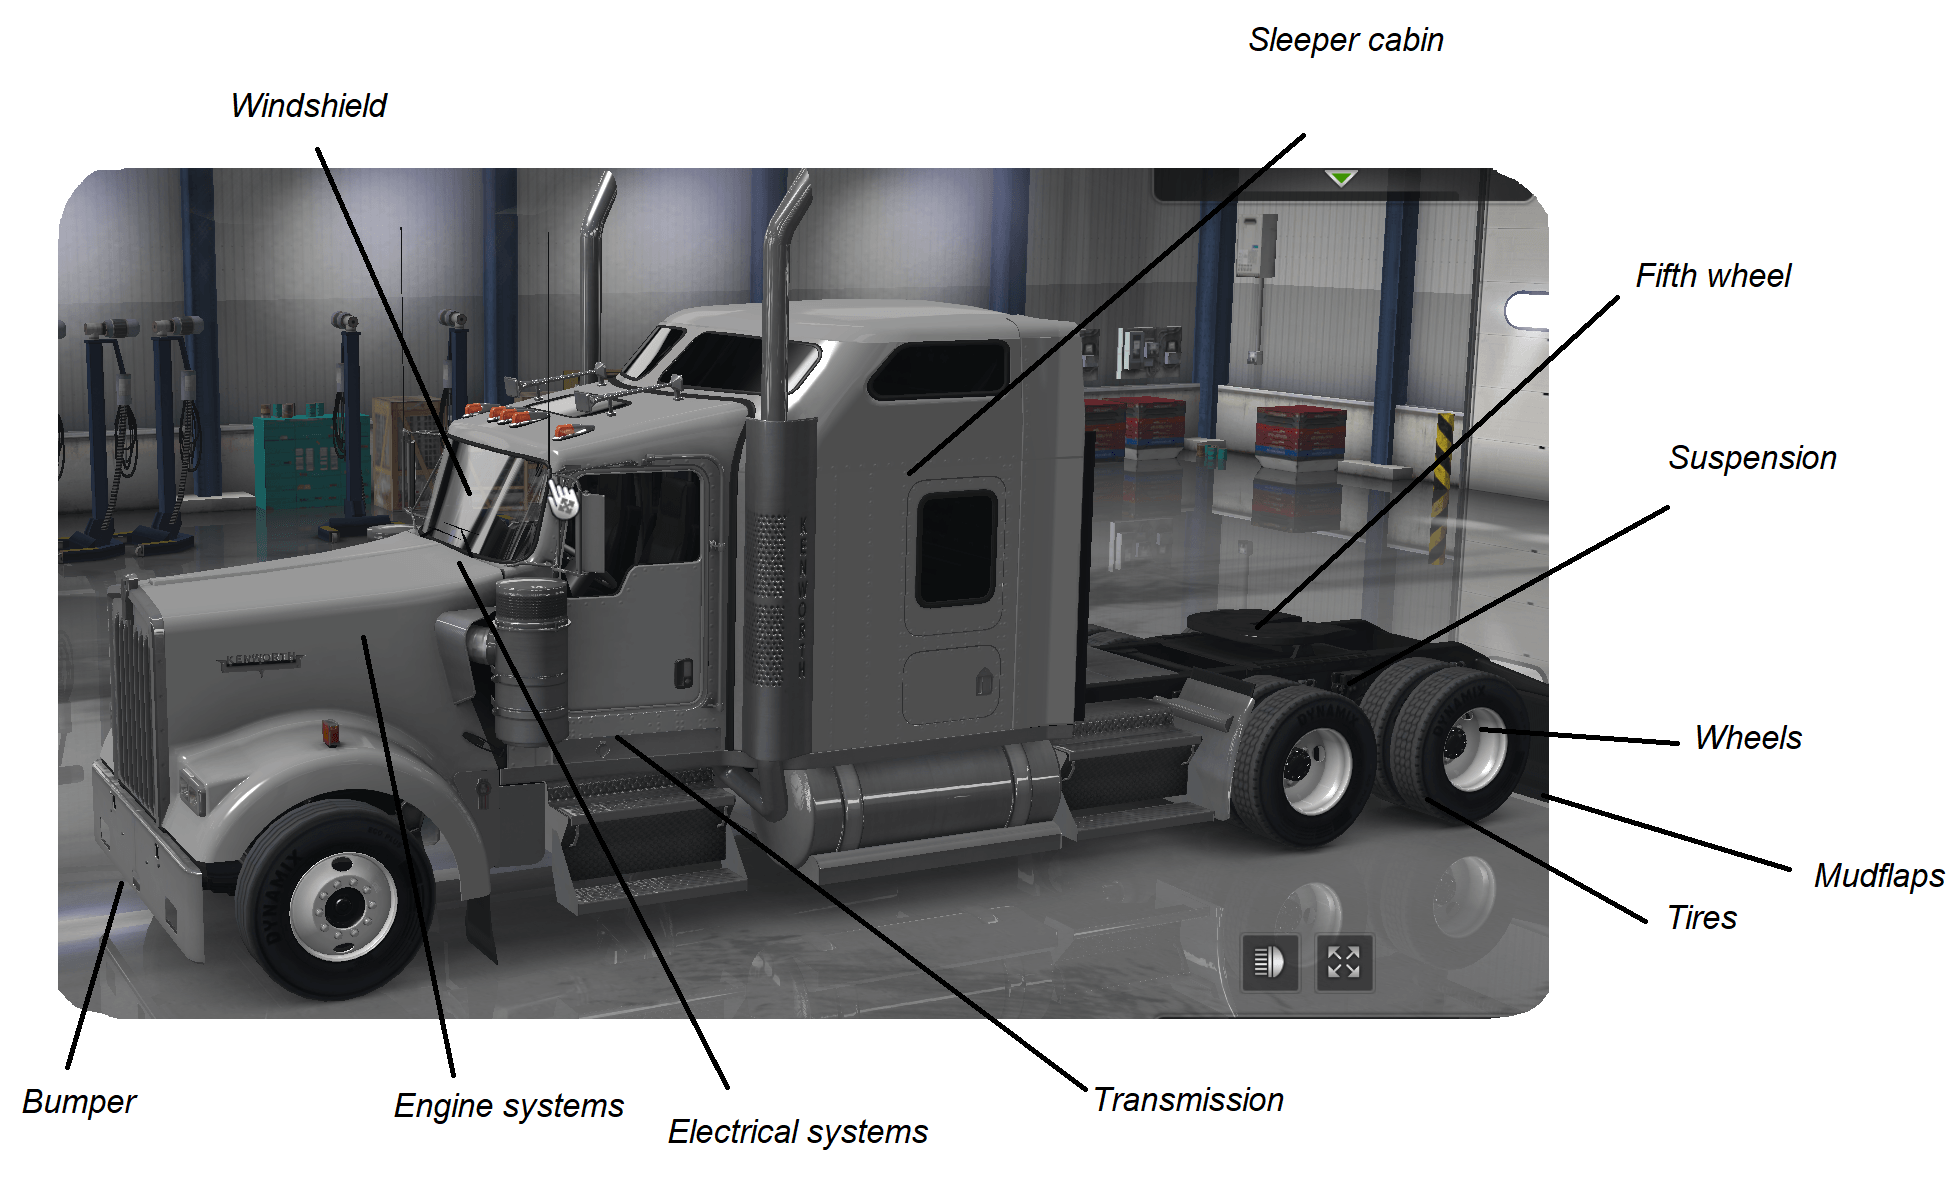 Parts of a Semi Truck Diagram | TruckFreighter.com